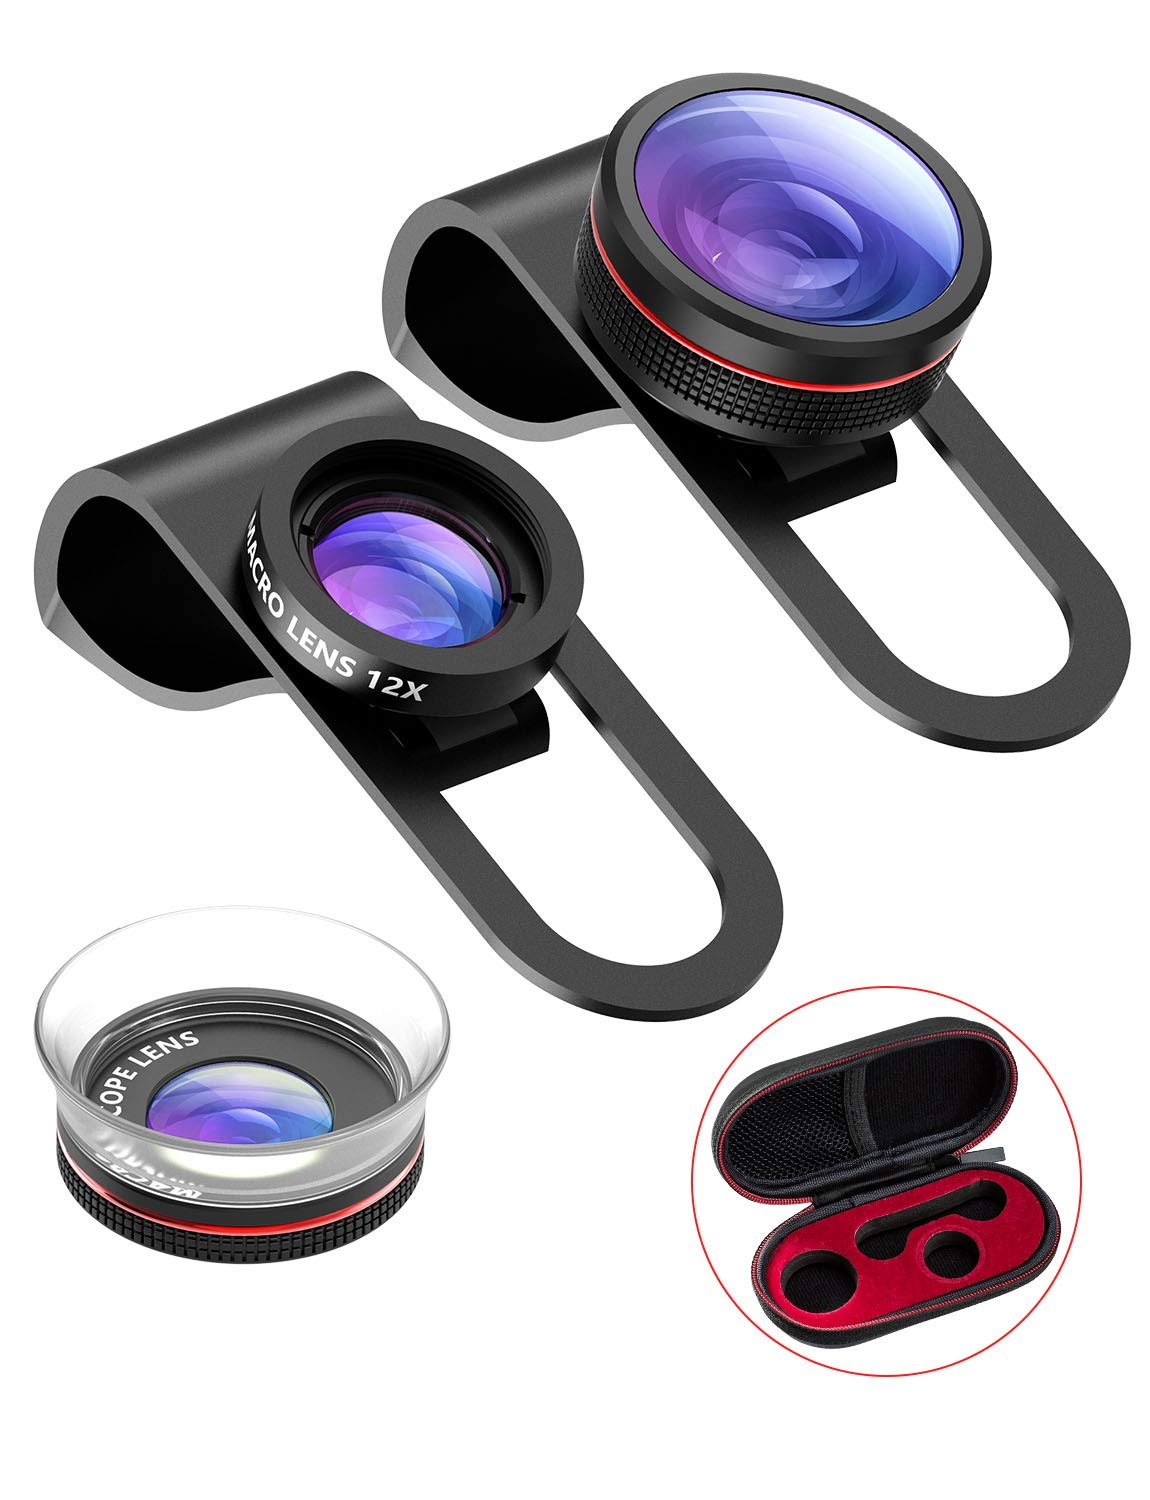 Smartphone Lens,VicTsing 3 in 1 Clip- On lense Kits 180° Fisheye Lens + 24X Macro + 12X Macro Lens,Professional Phone Camera Lenses for iPhone X /iphone8/8 plugs /7 6/6s Samsung Huawei and Other